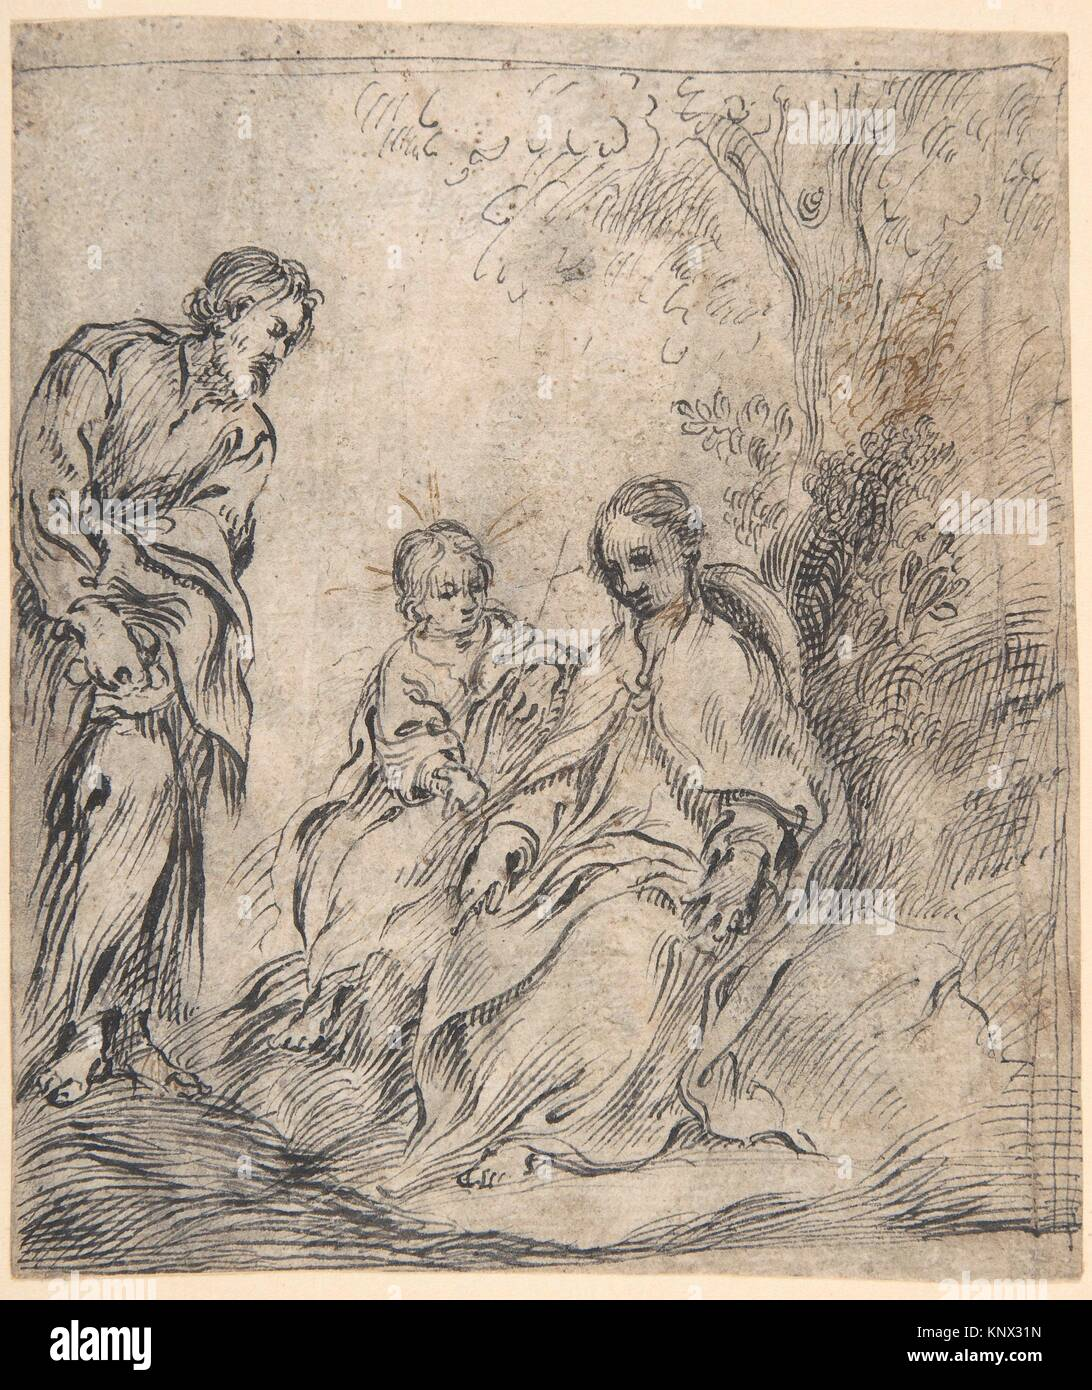 The Youthful Baptist with his Parents. Artist: attributed to Antonio del Castillo y Saavedra (Spanish, Cordoba 1616 - Stock Image